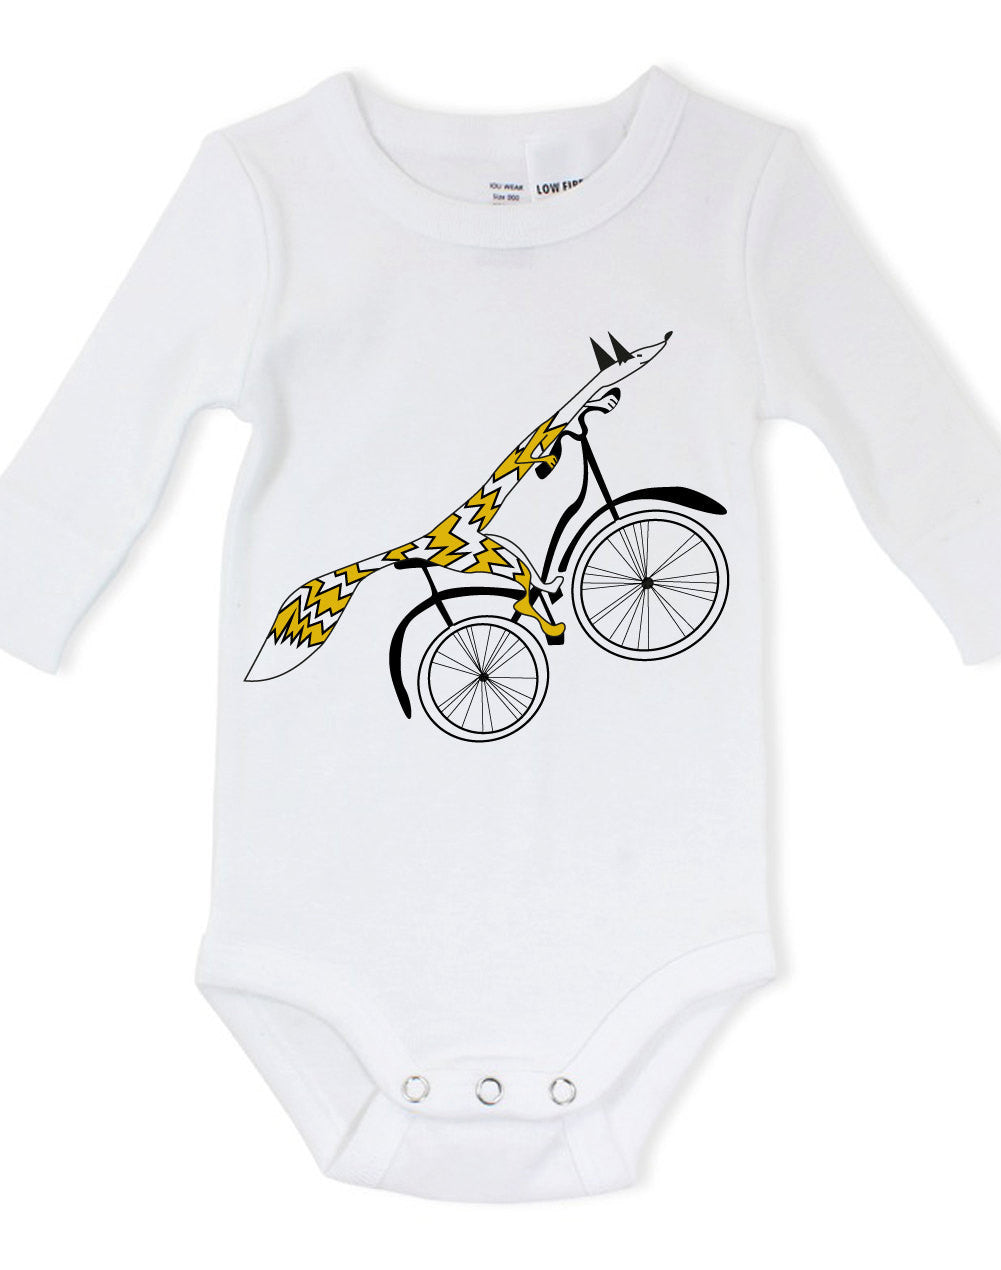 Fox bike baby bodysuit for bike lover - ARTsy clothing - 1